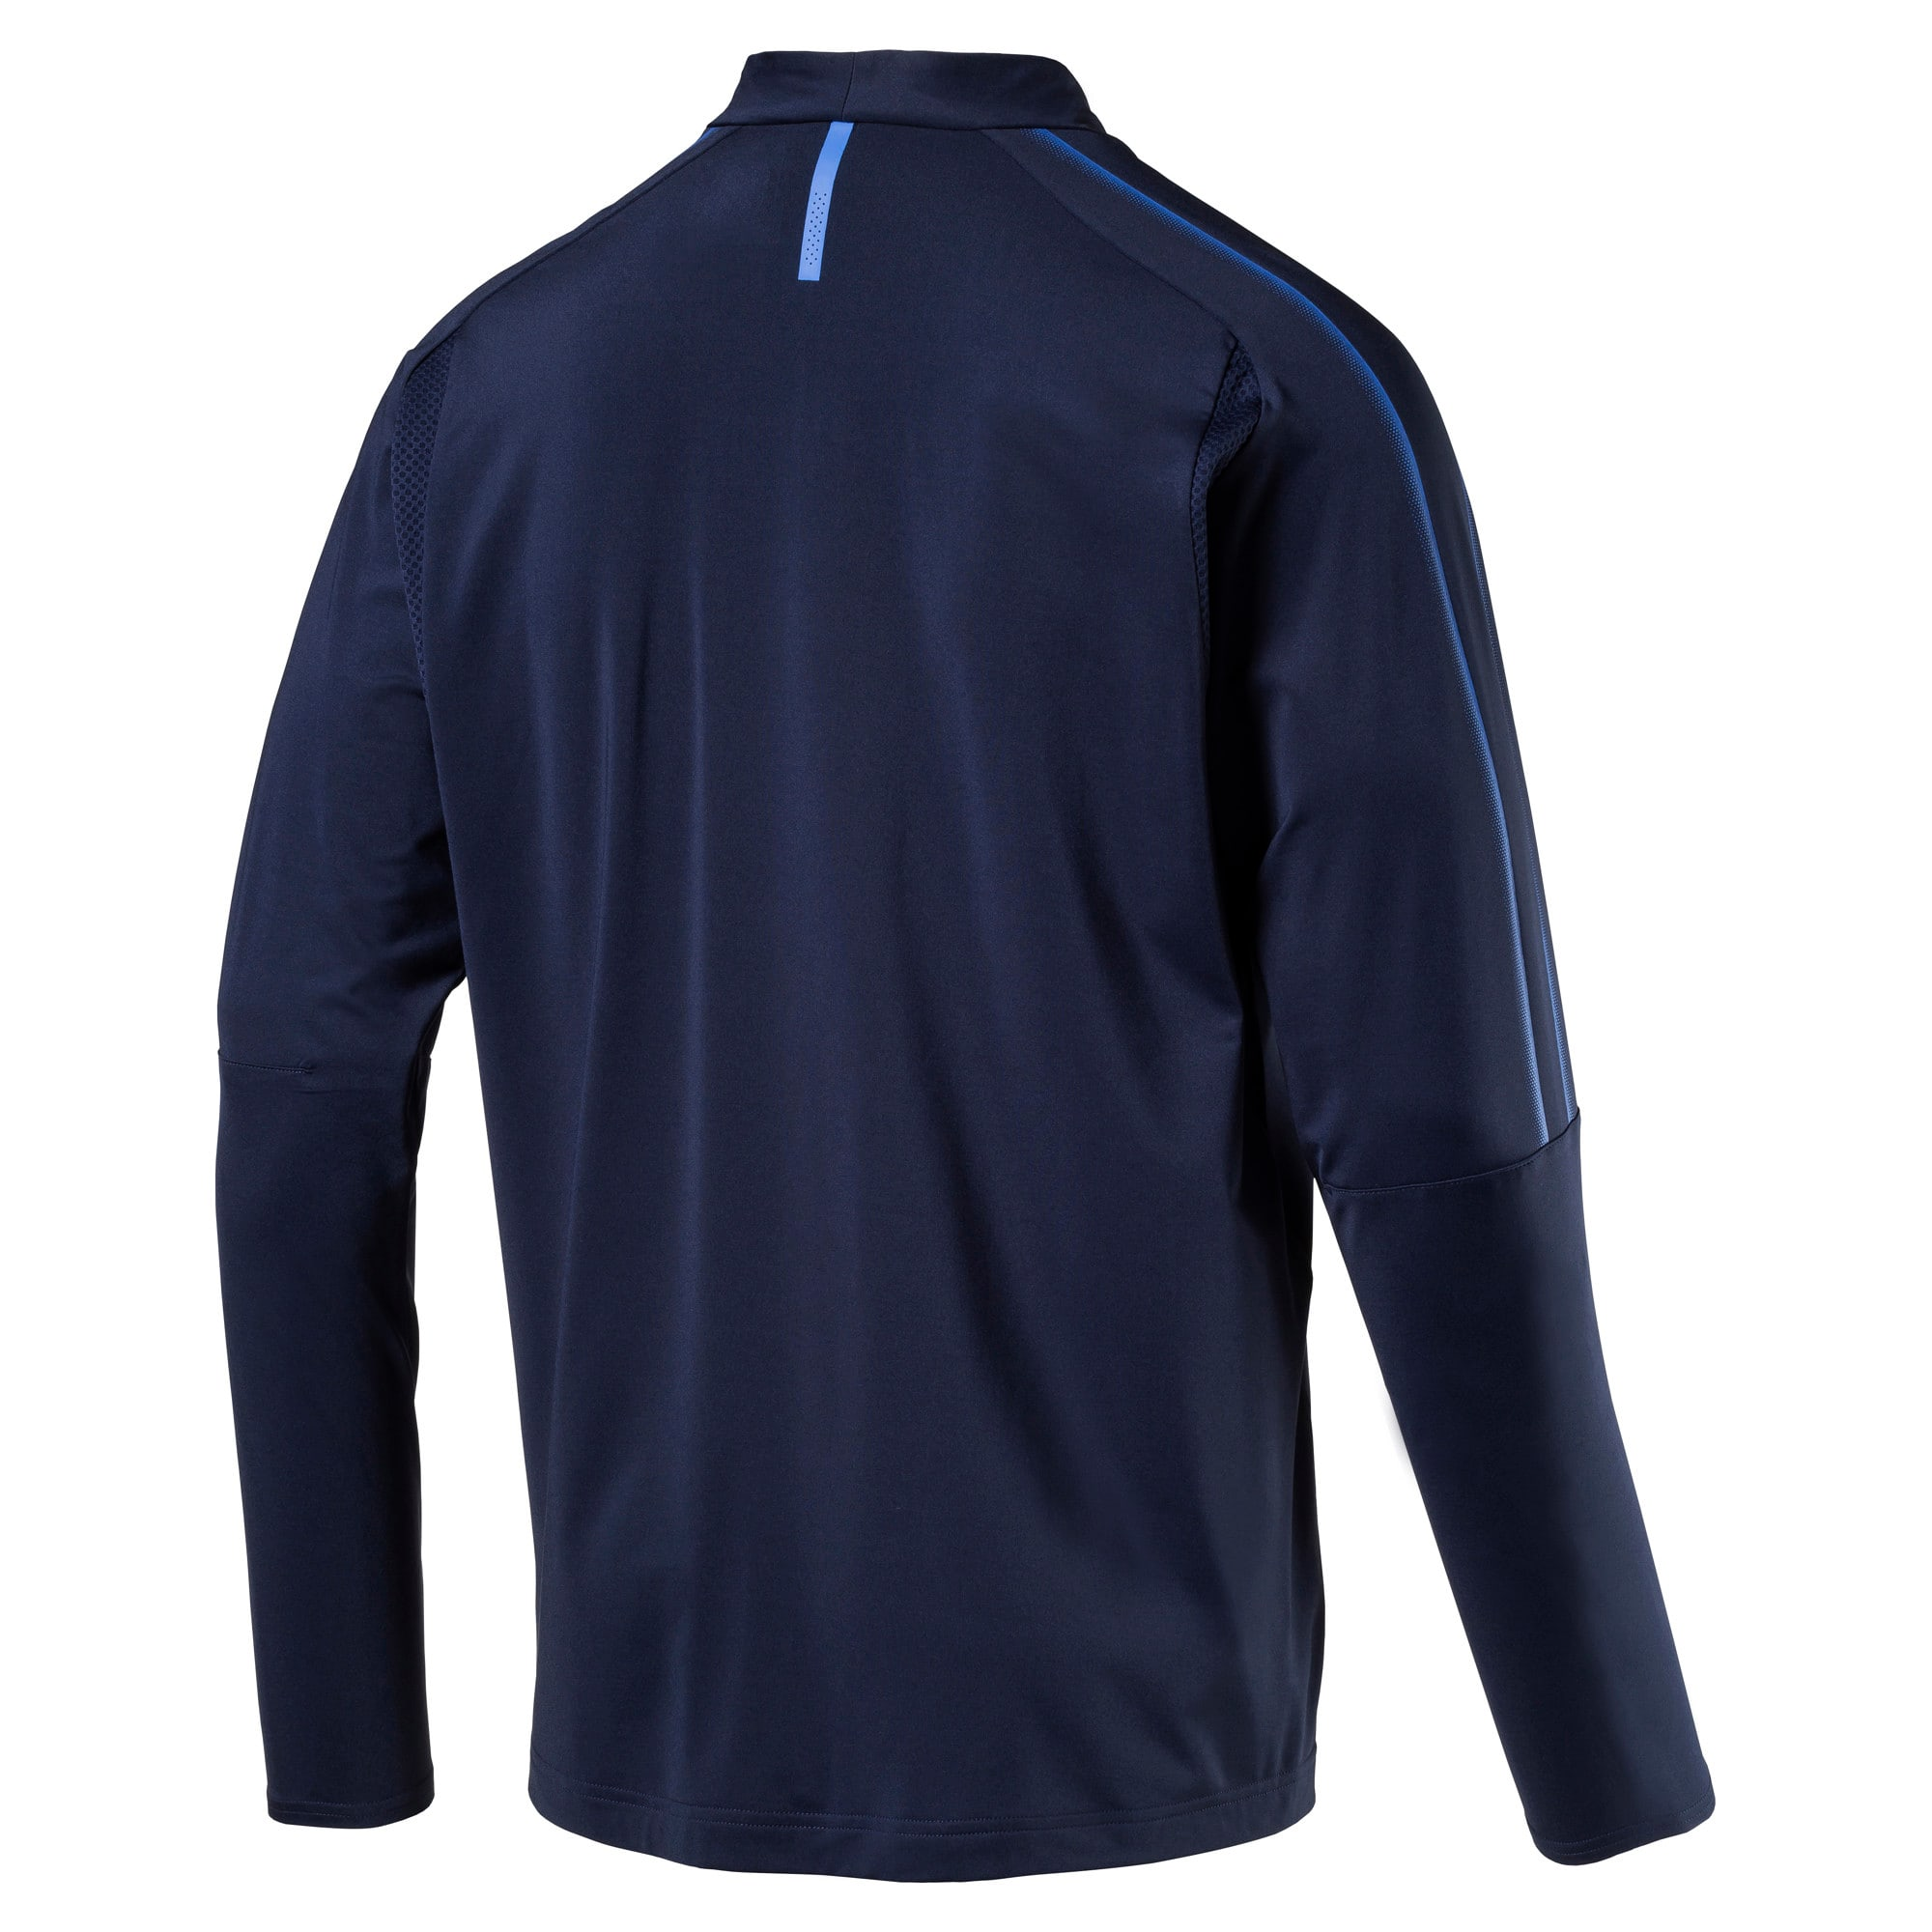 Thumbnail 4 of Czech Republic 1/4 Zip Training Top, Peacoat, medium